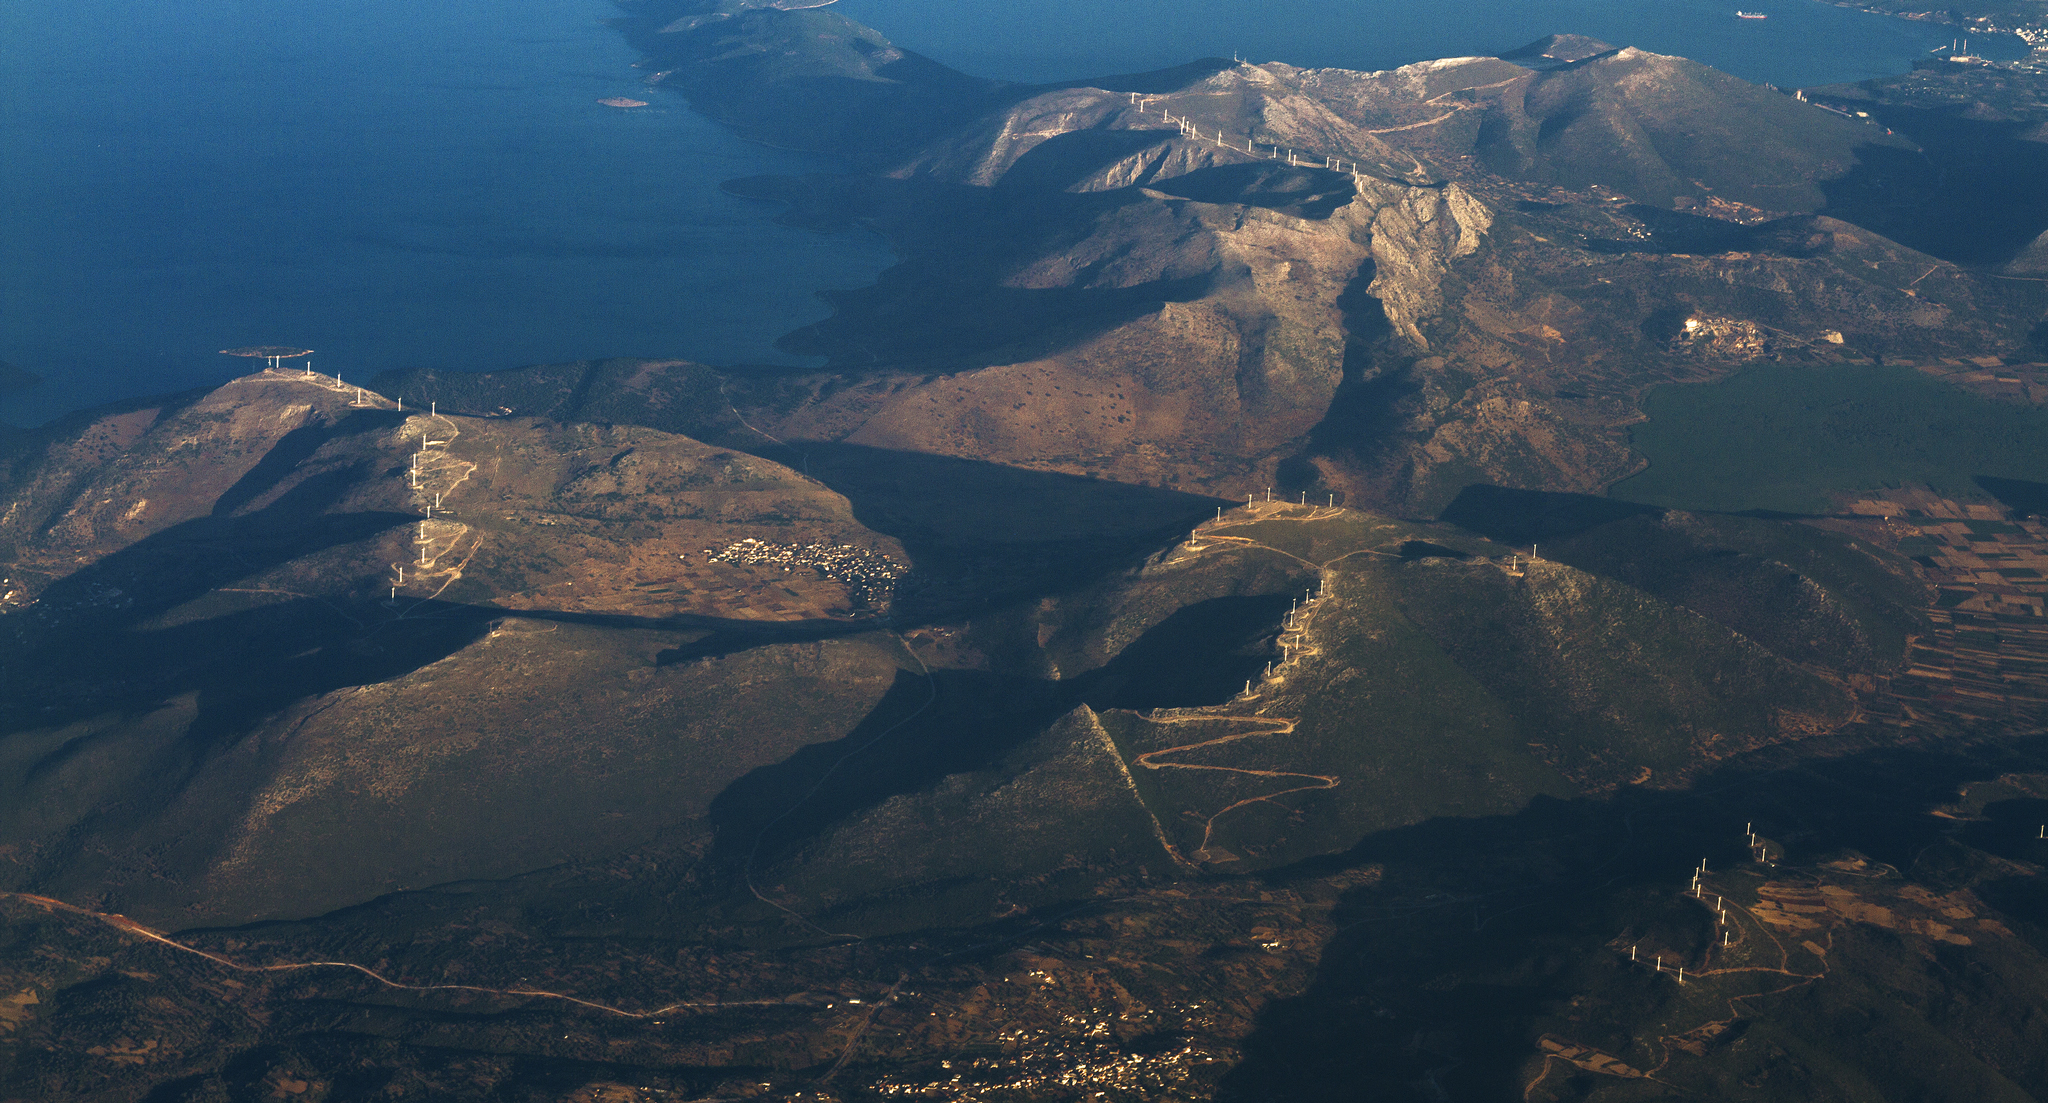 landscape___5____airplane_view__greece__by_the_french_monkey-d8sd1yy.jpg